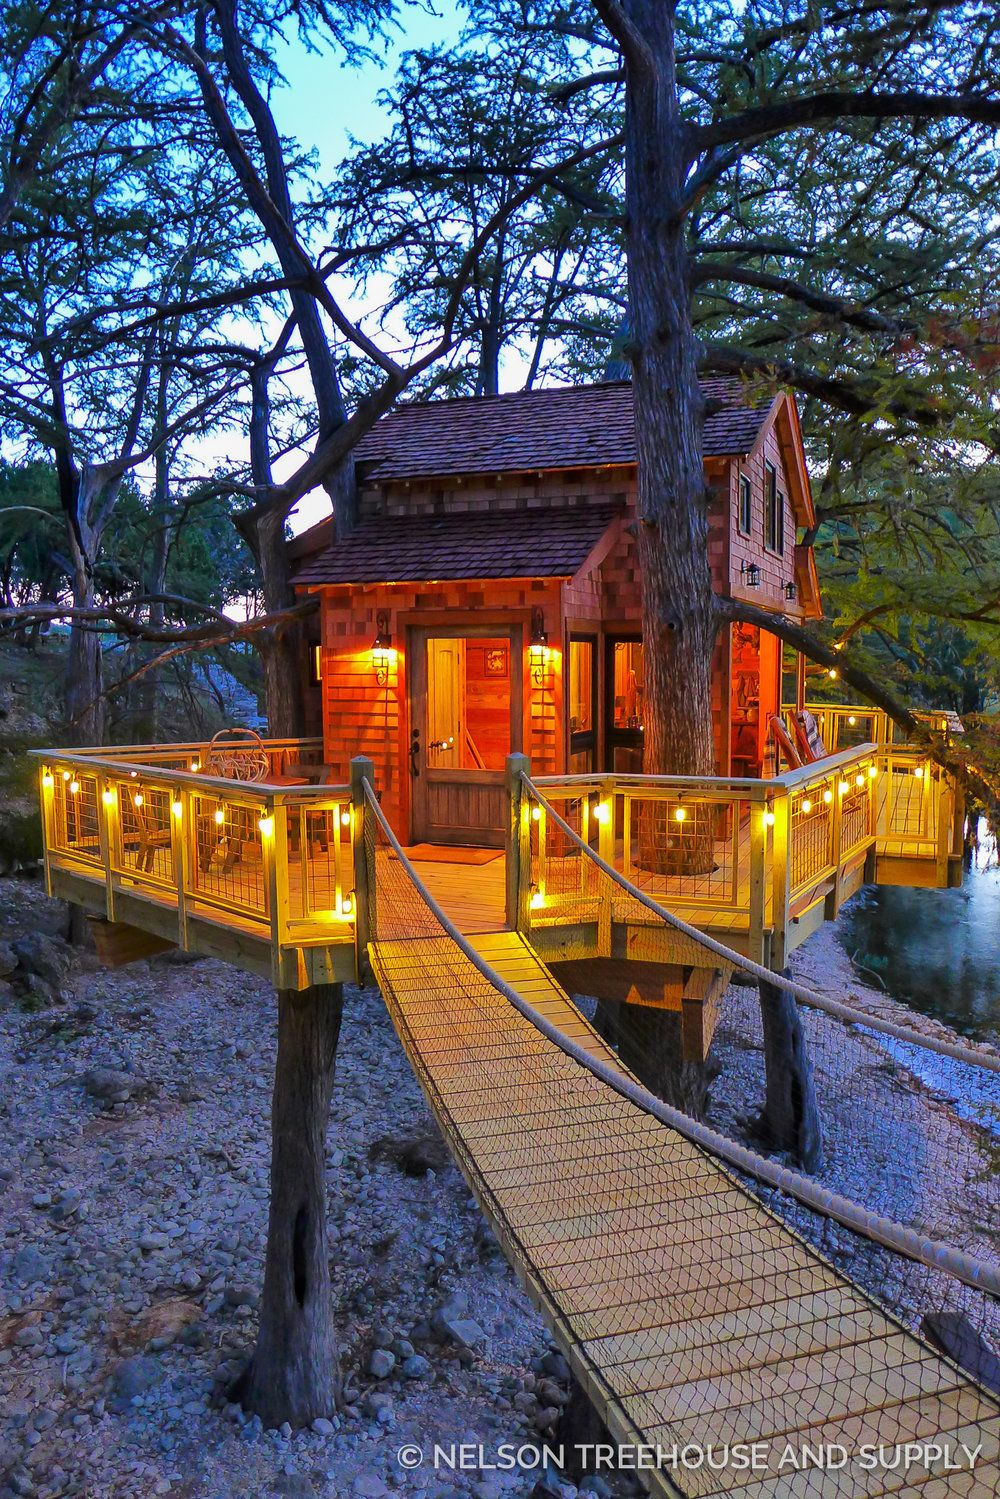 Nelson Treehouse Season 6 Frio River Treehouse